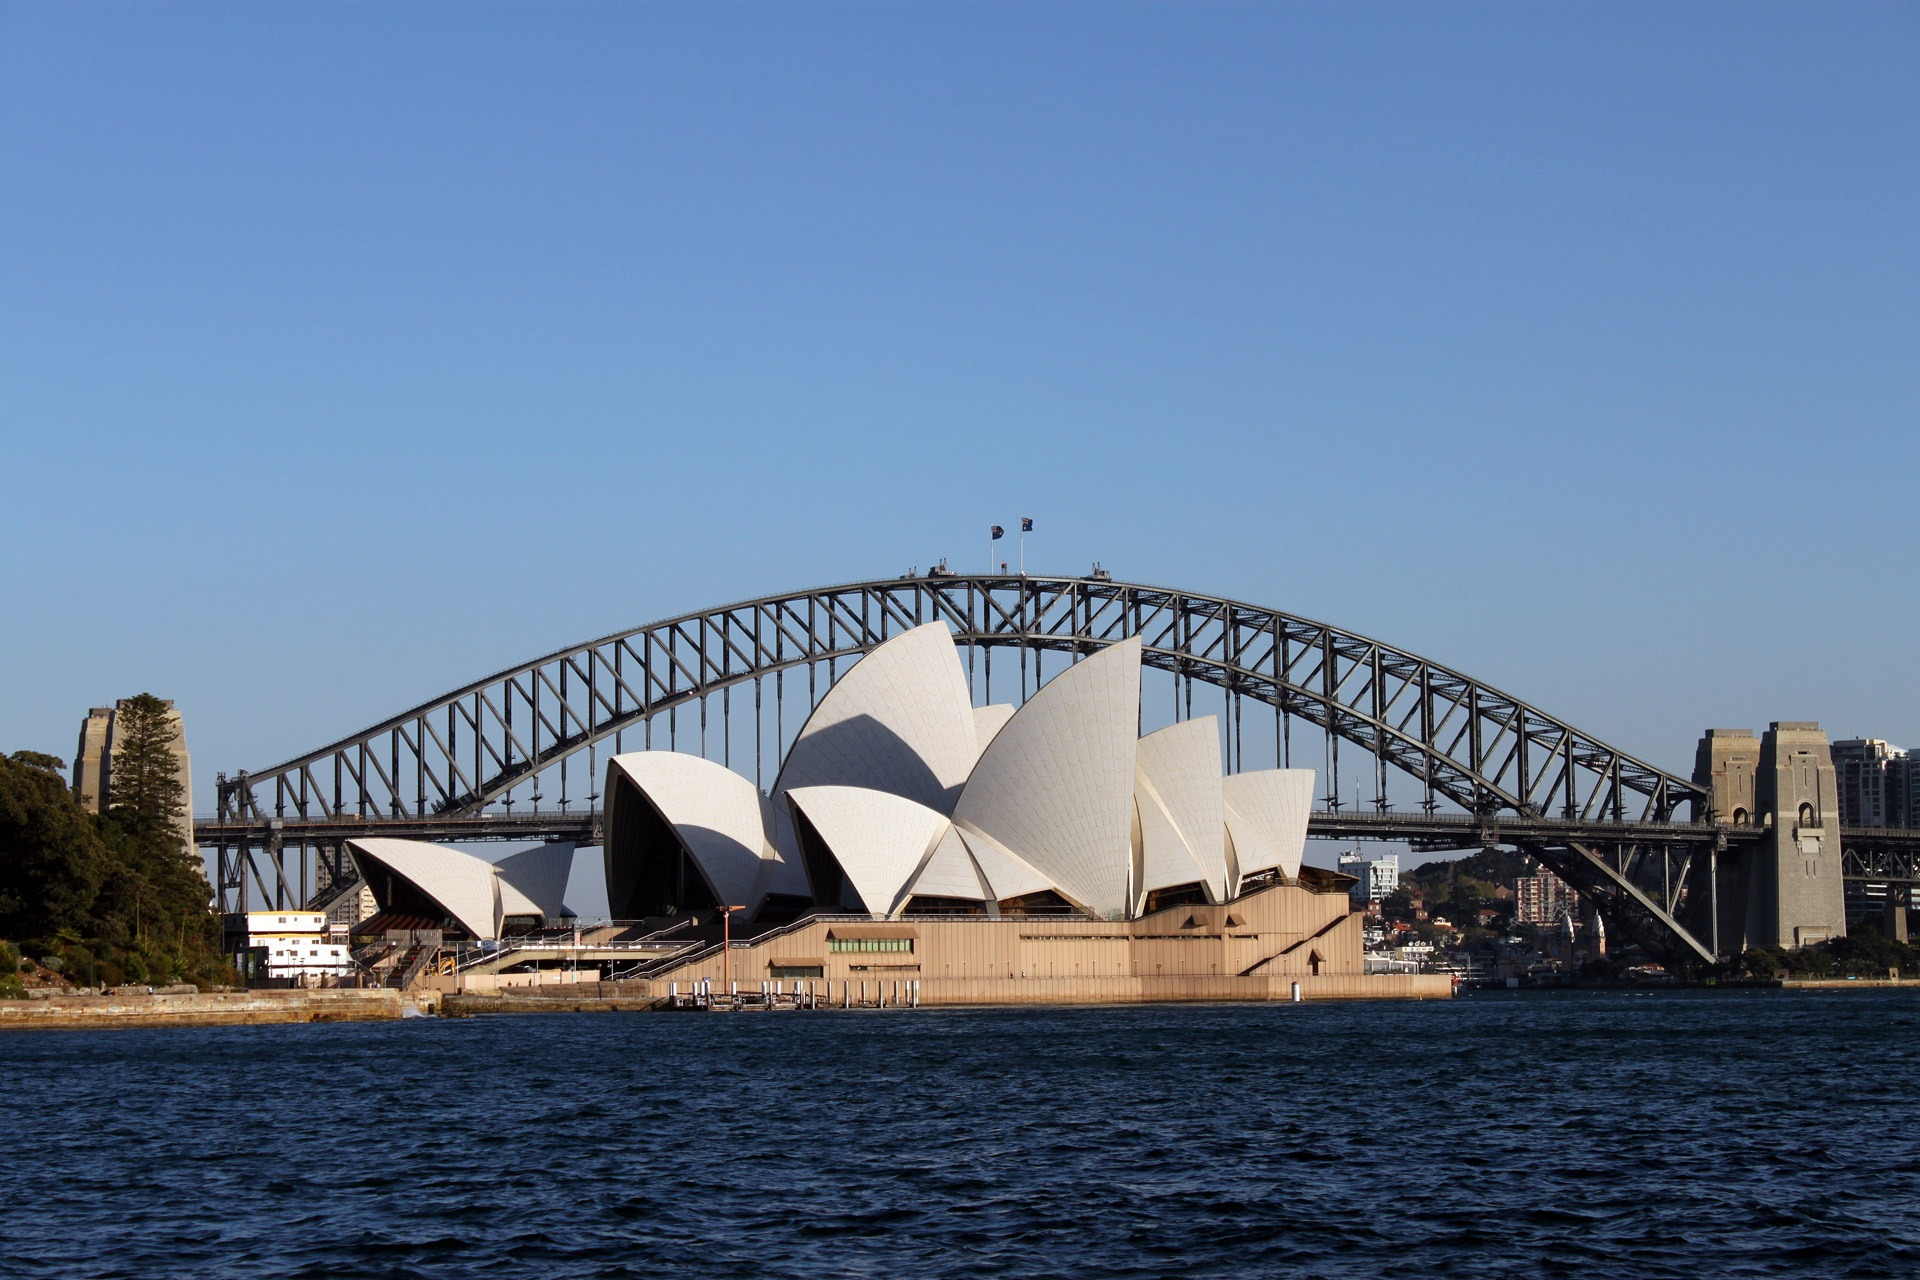 Sydney Opera House and Sydney Harbour Bridge, Sydney Australia